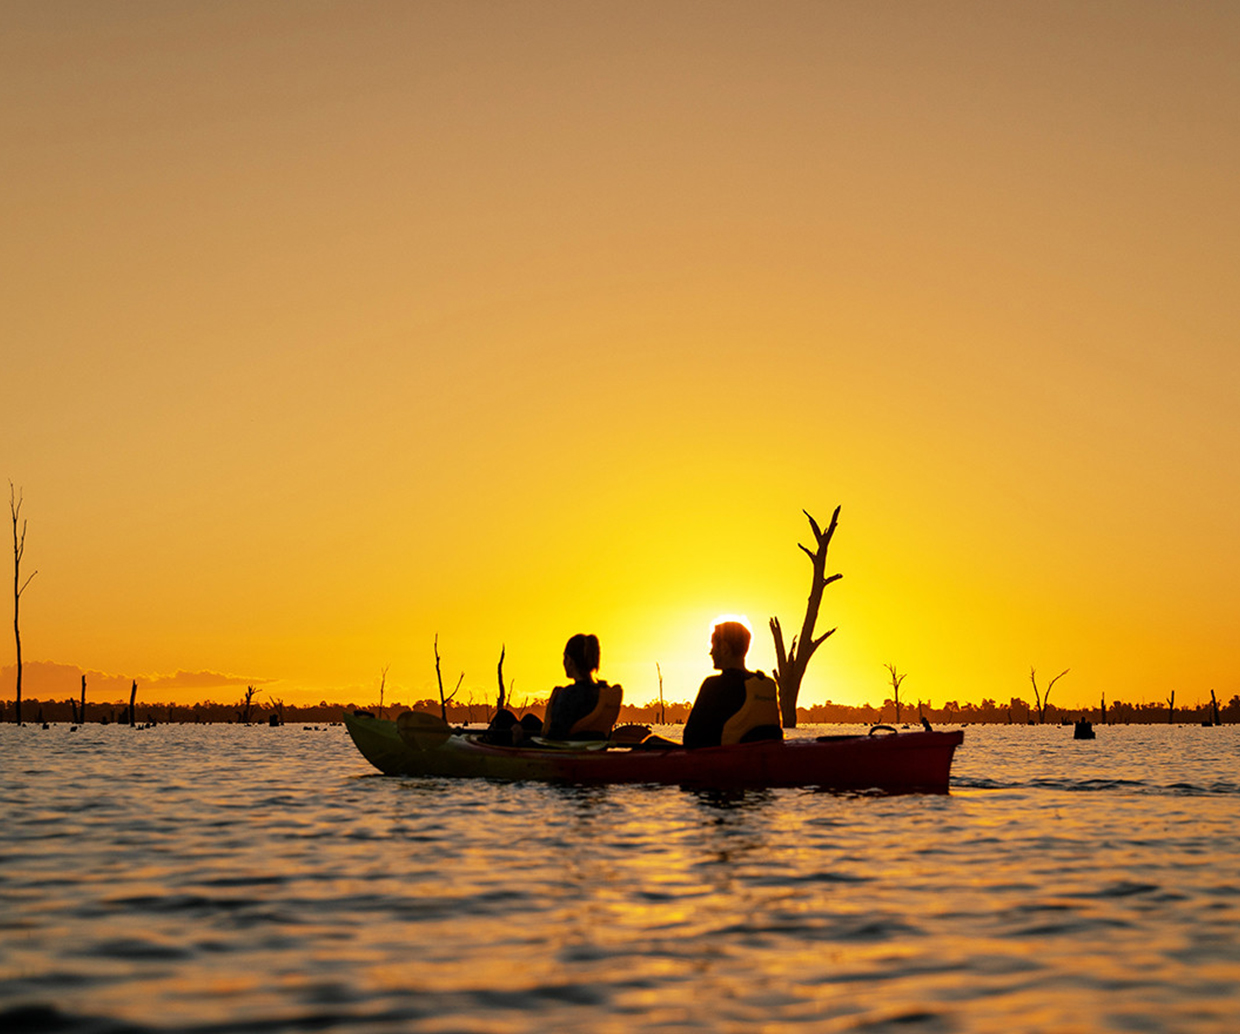 two people kayaking on river at sunset